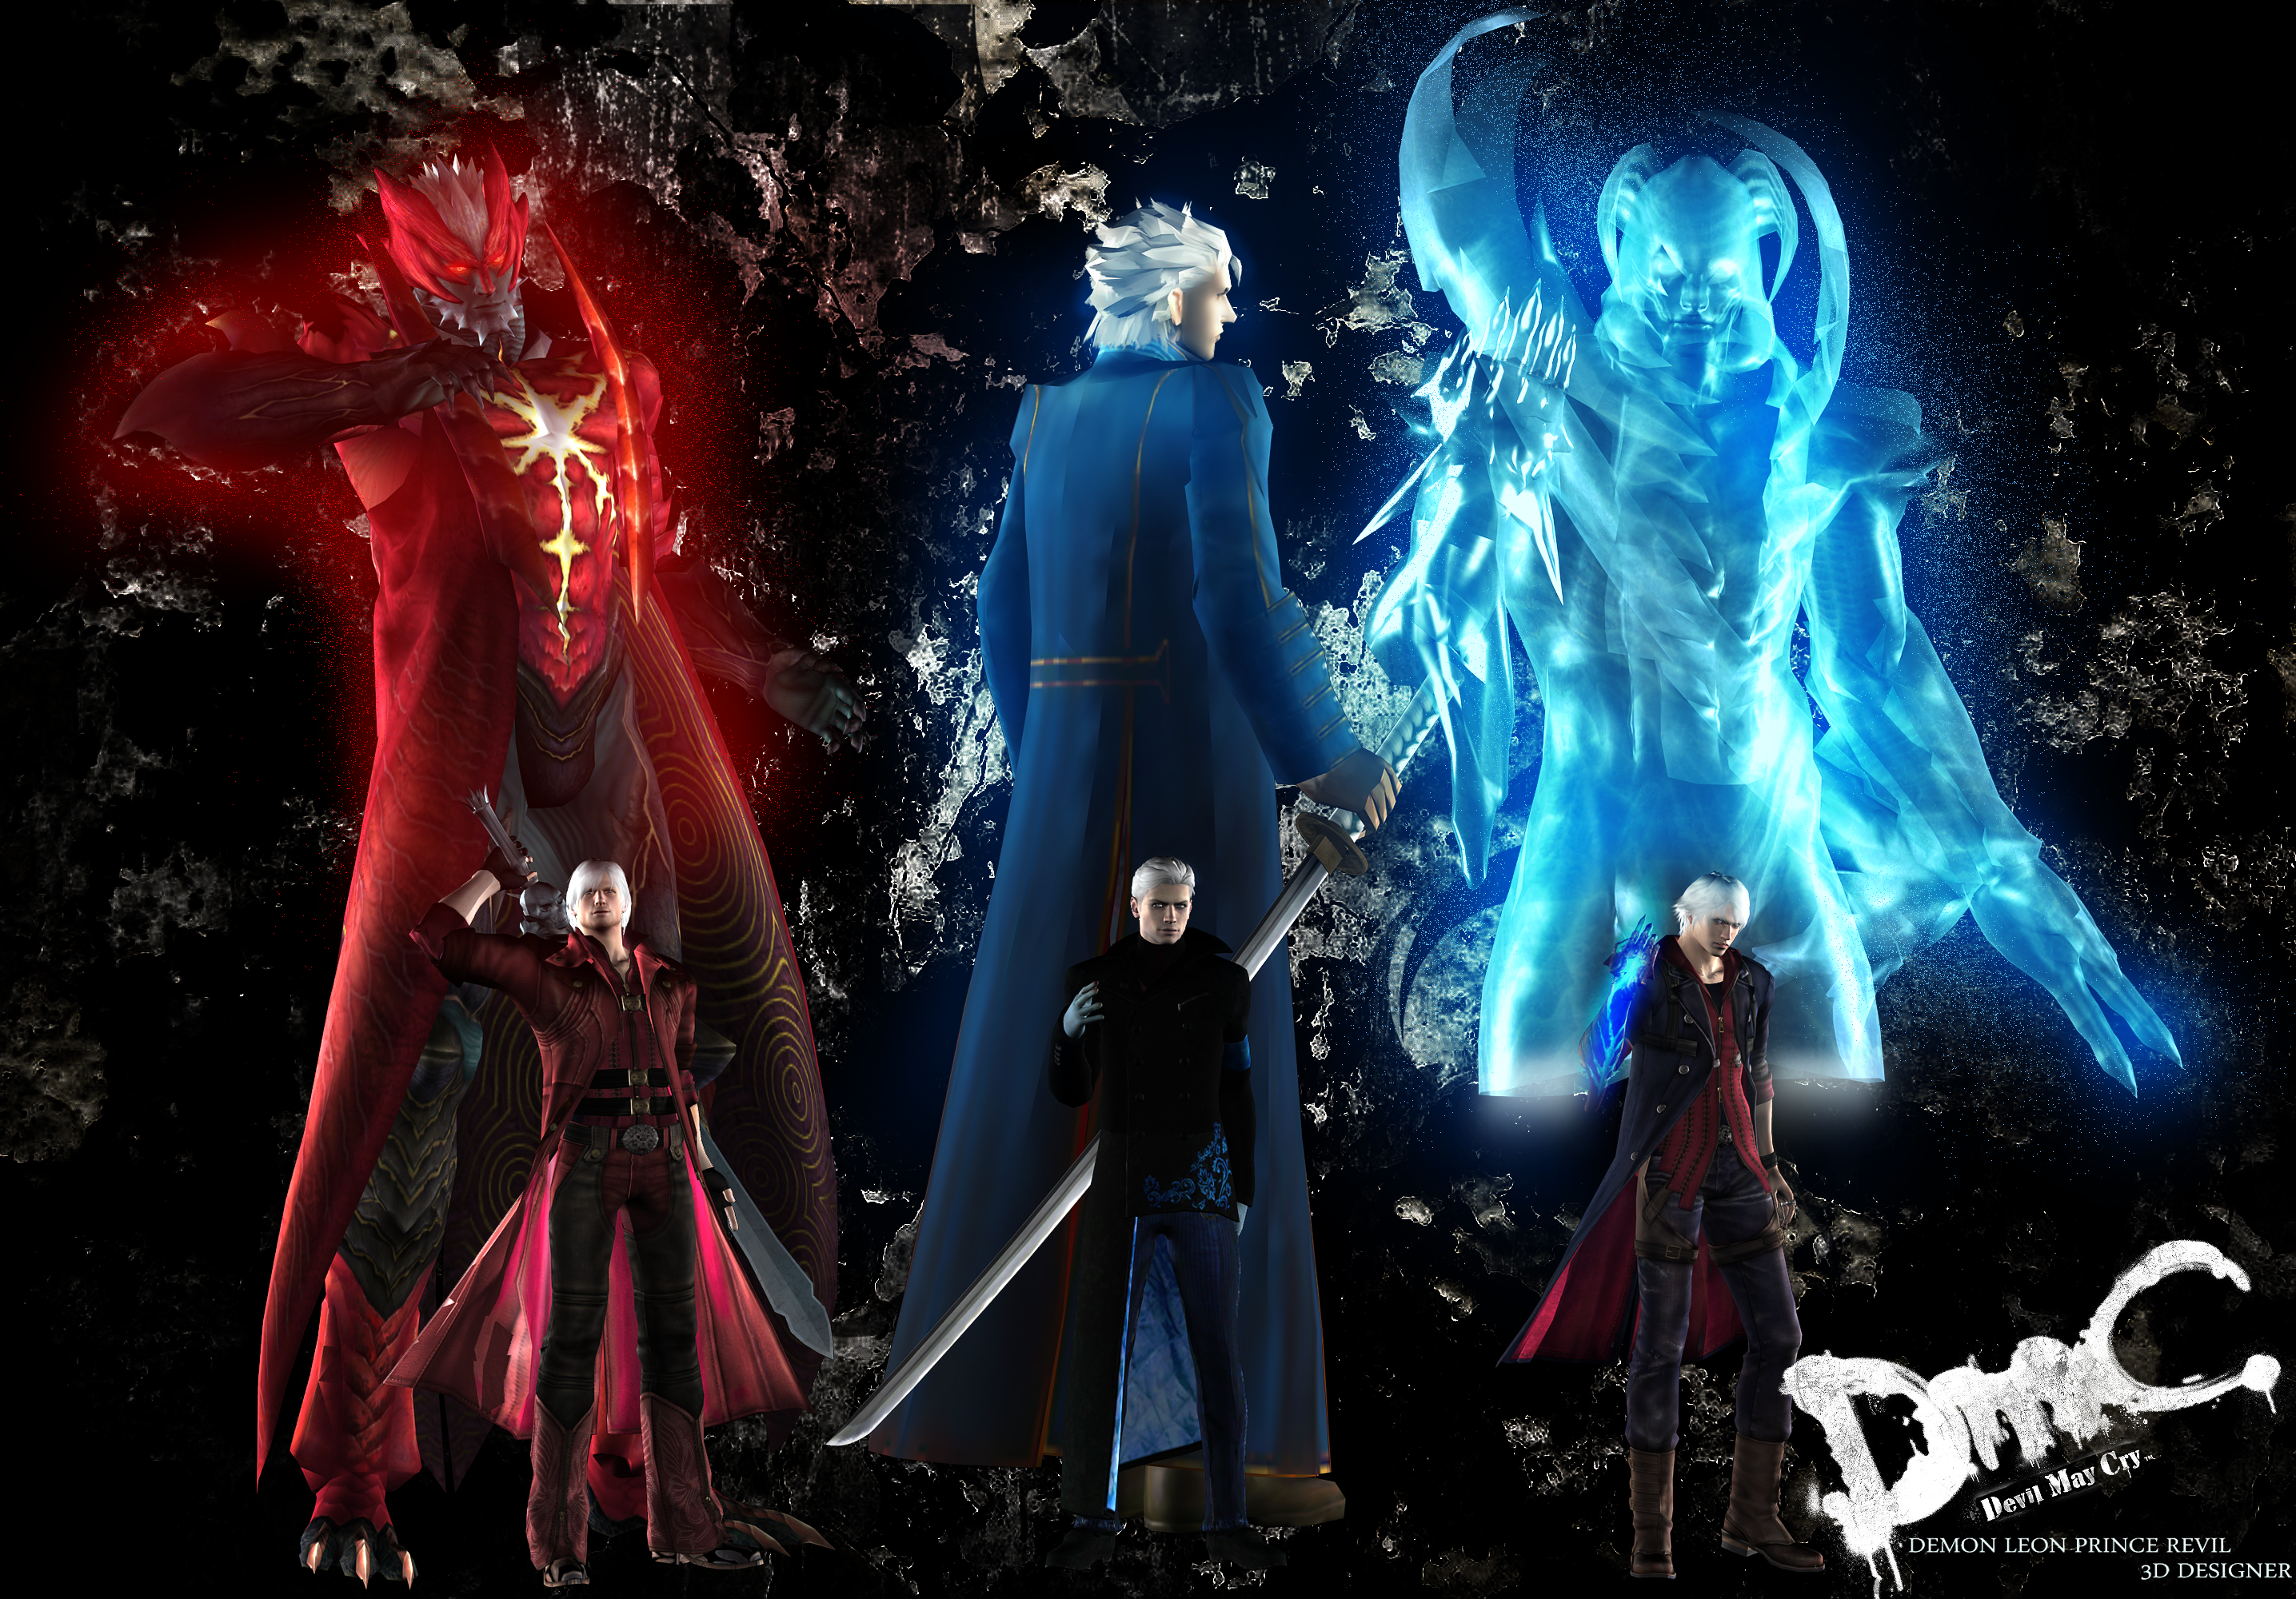 Dmc devil may cry 3d demons devil may cry by dmc devil may cry 3d demons devil may cry by demonleonprincerevil on deviantart voltagebd Gallery